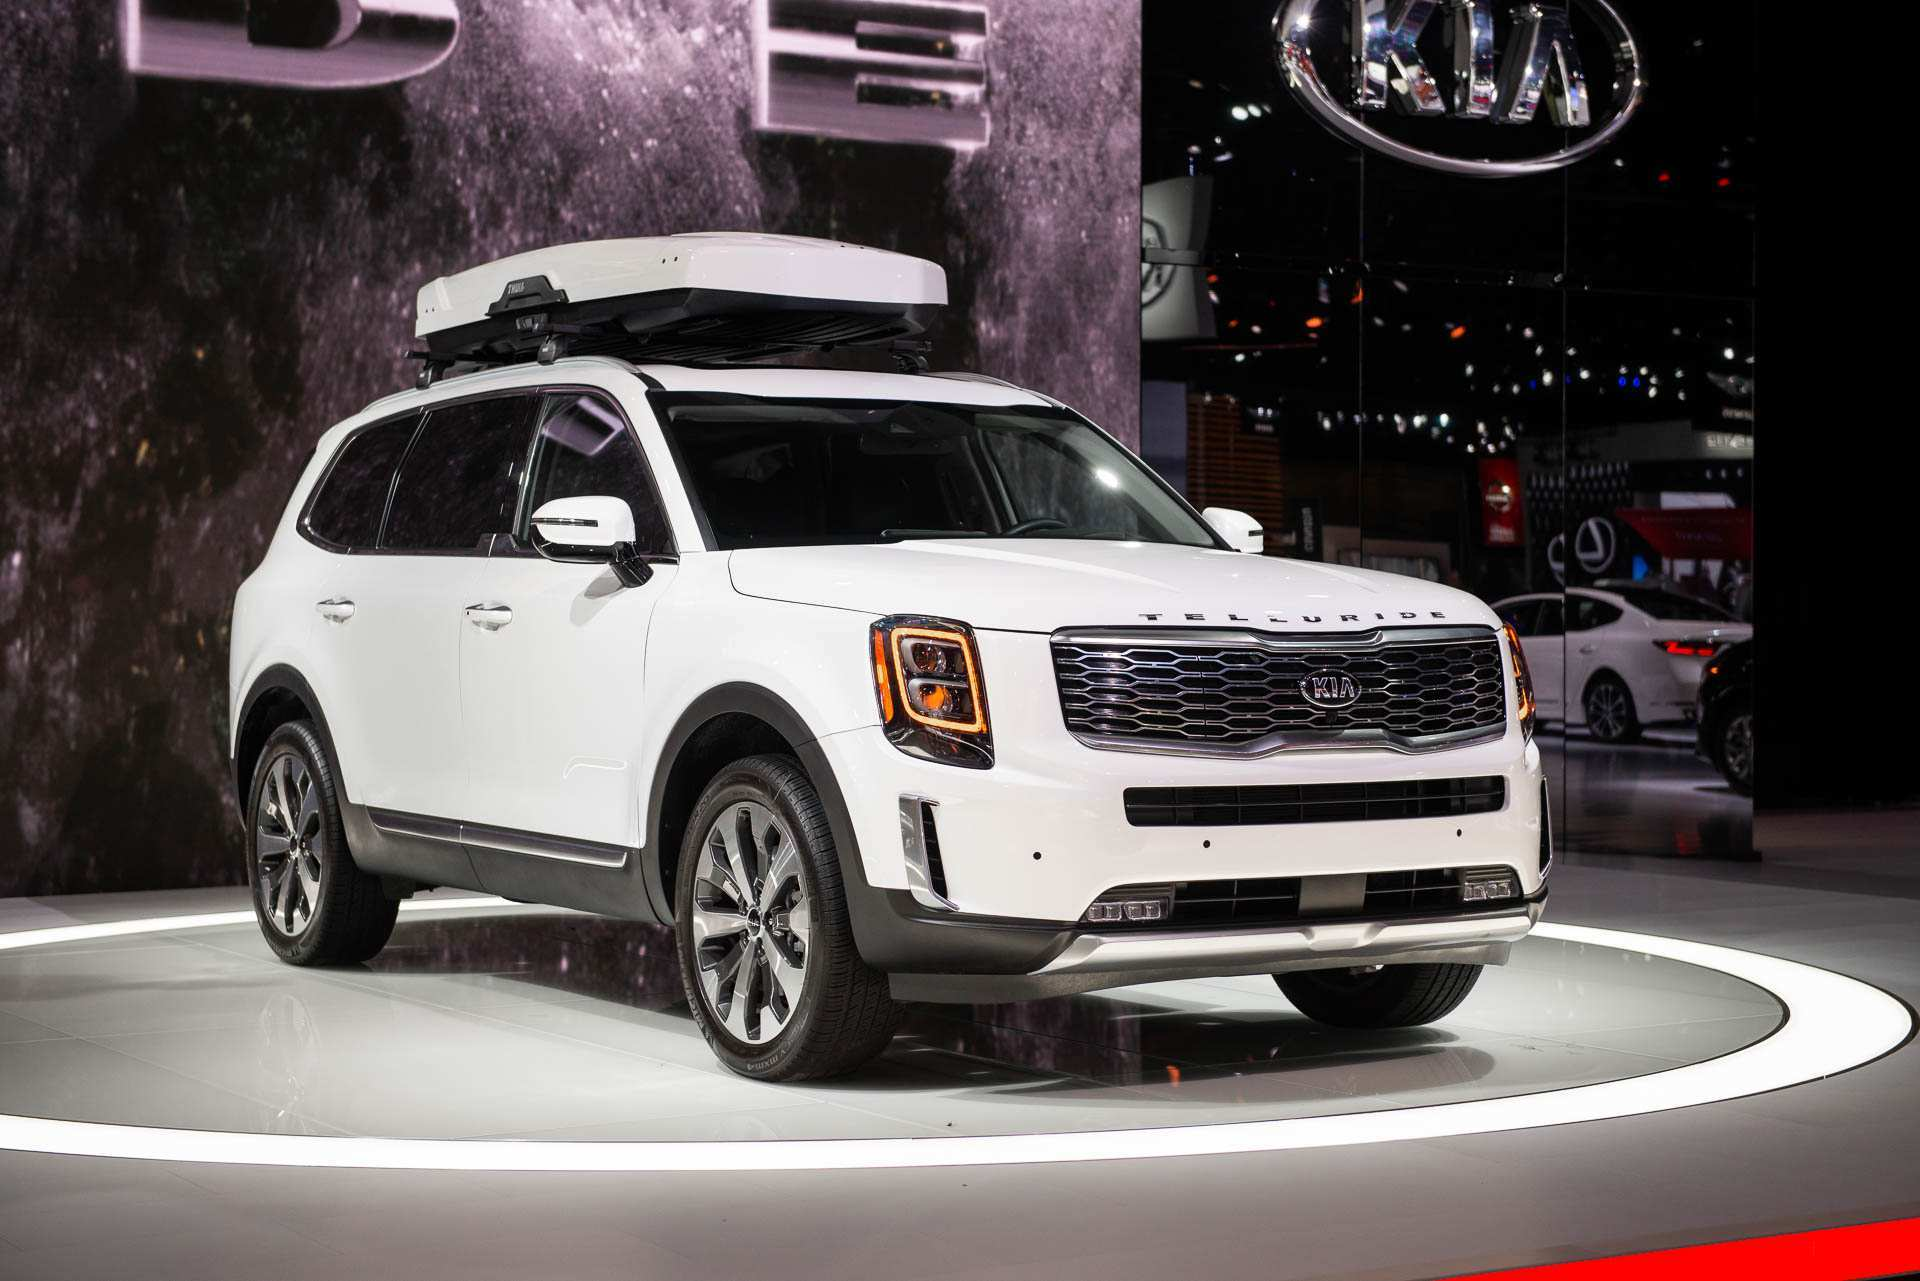 89 New Kia Telluride 2020 Review by Kia Telluride 2020